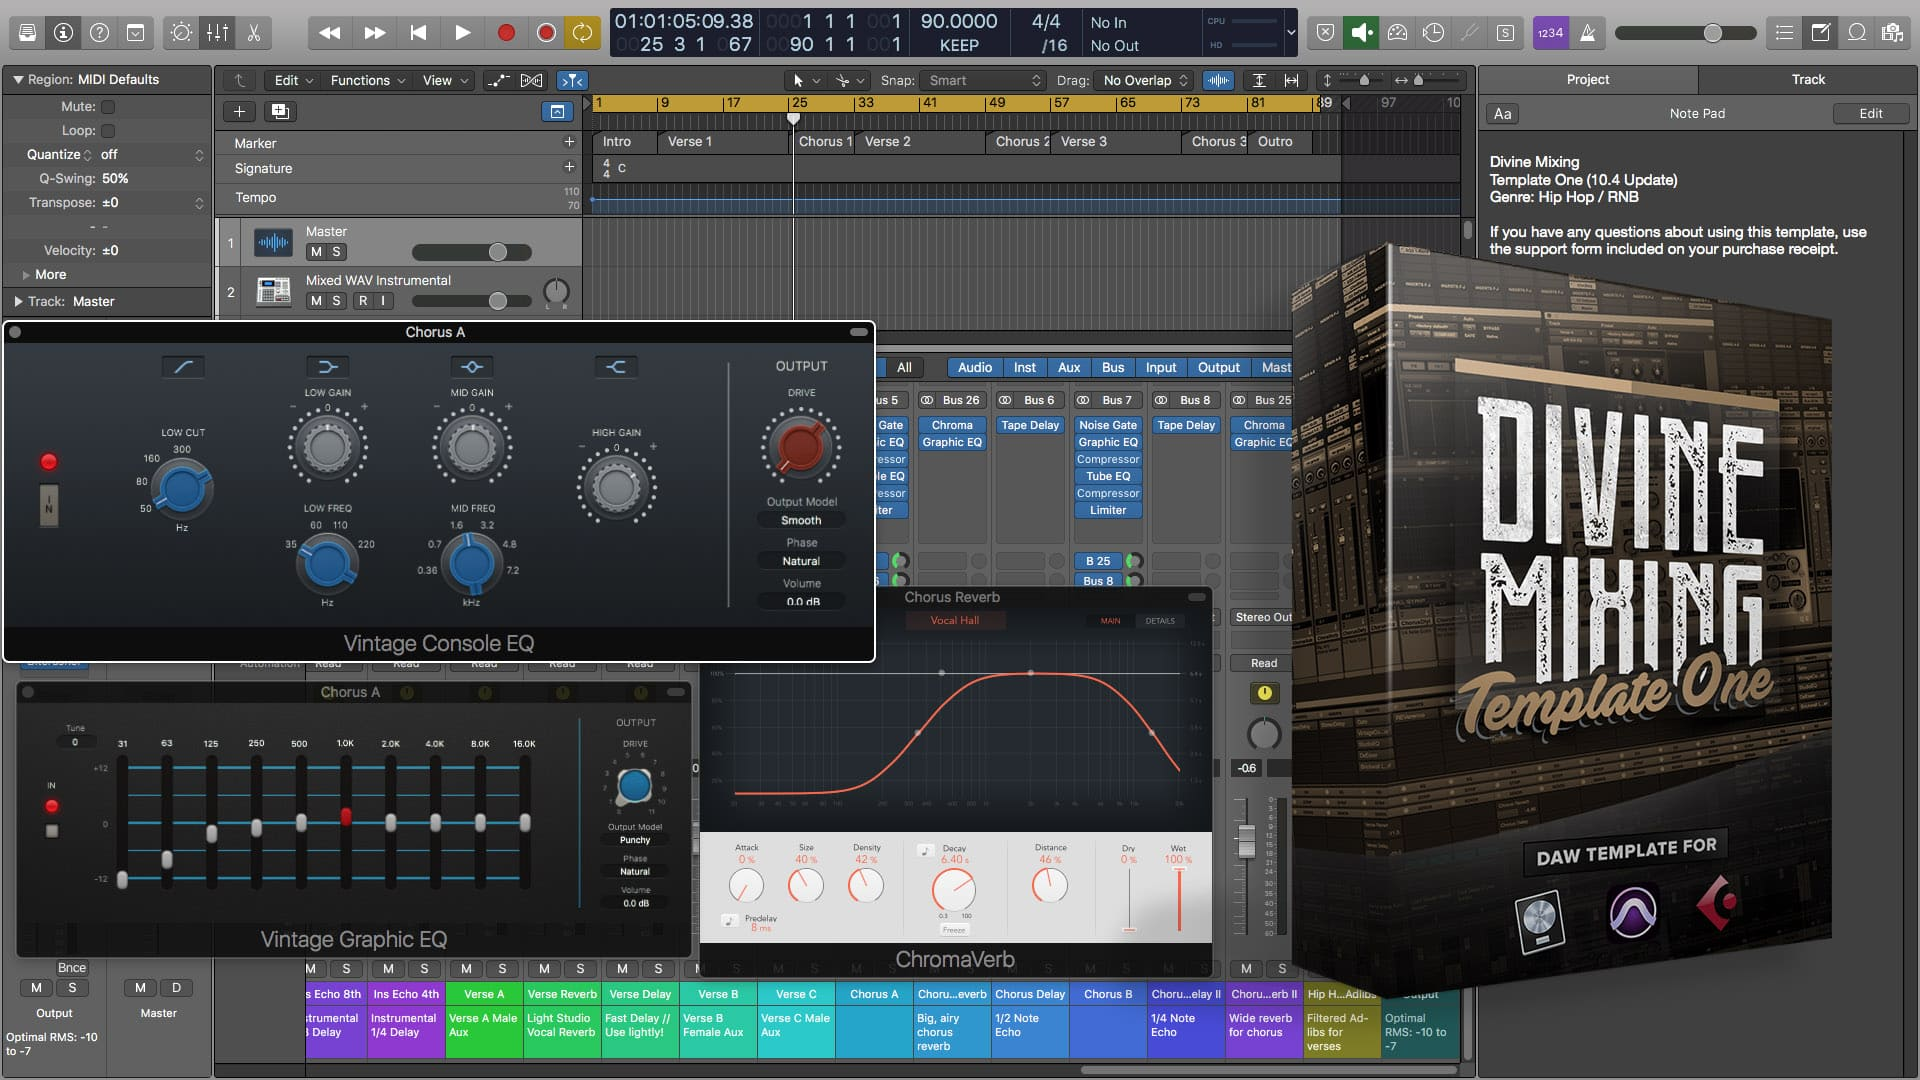 Divine Mixing Template One Logic Pro X 104 Free Update